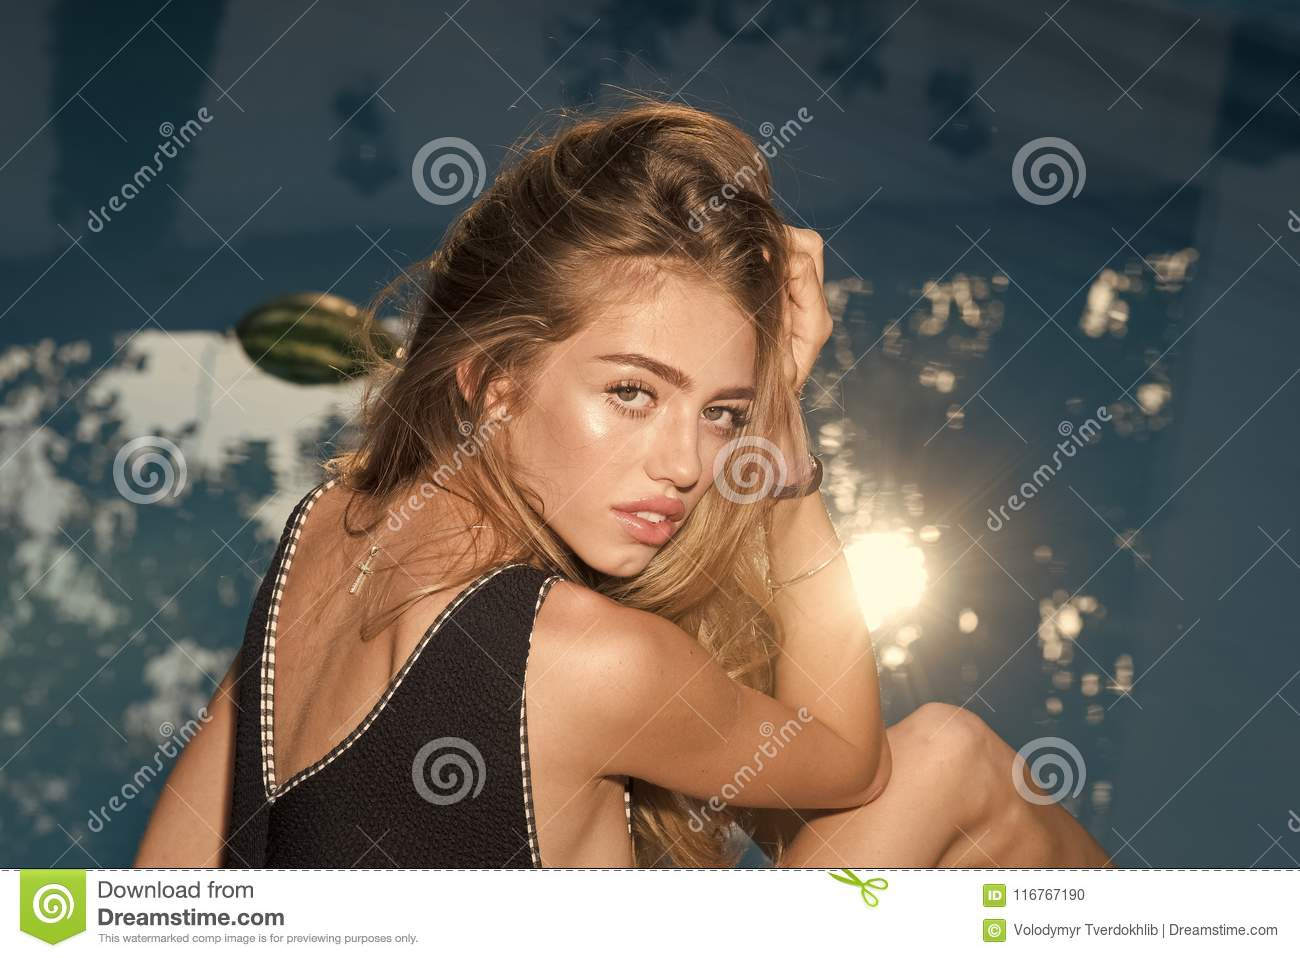 Fashion and beauty of woman with natural makeup and hair. Maldives or Miami beach, diet. woman on sea in swimsuit. Summer vacation and travel to ocean, ...